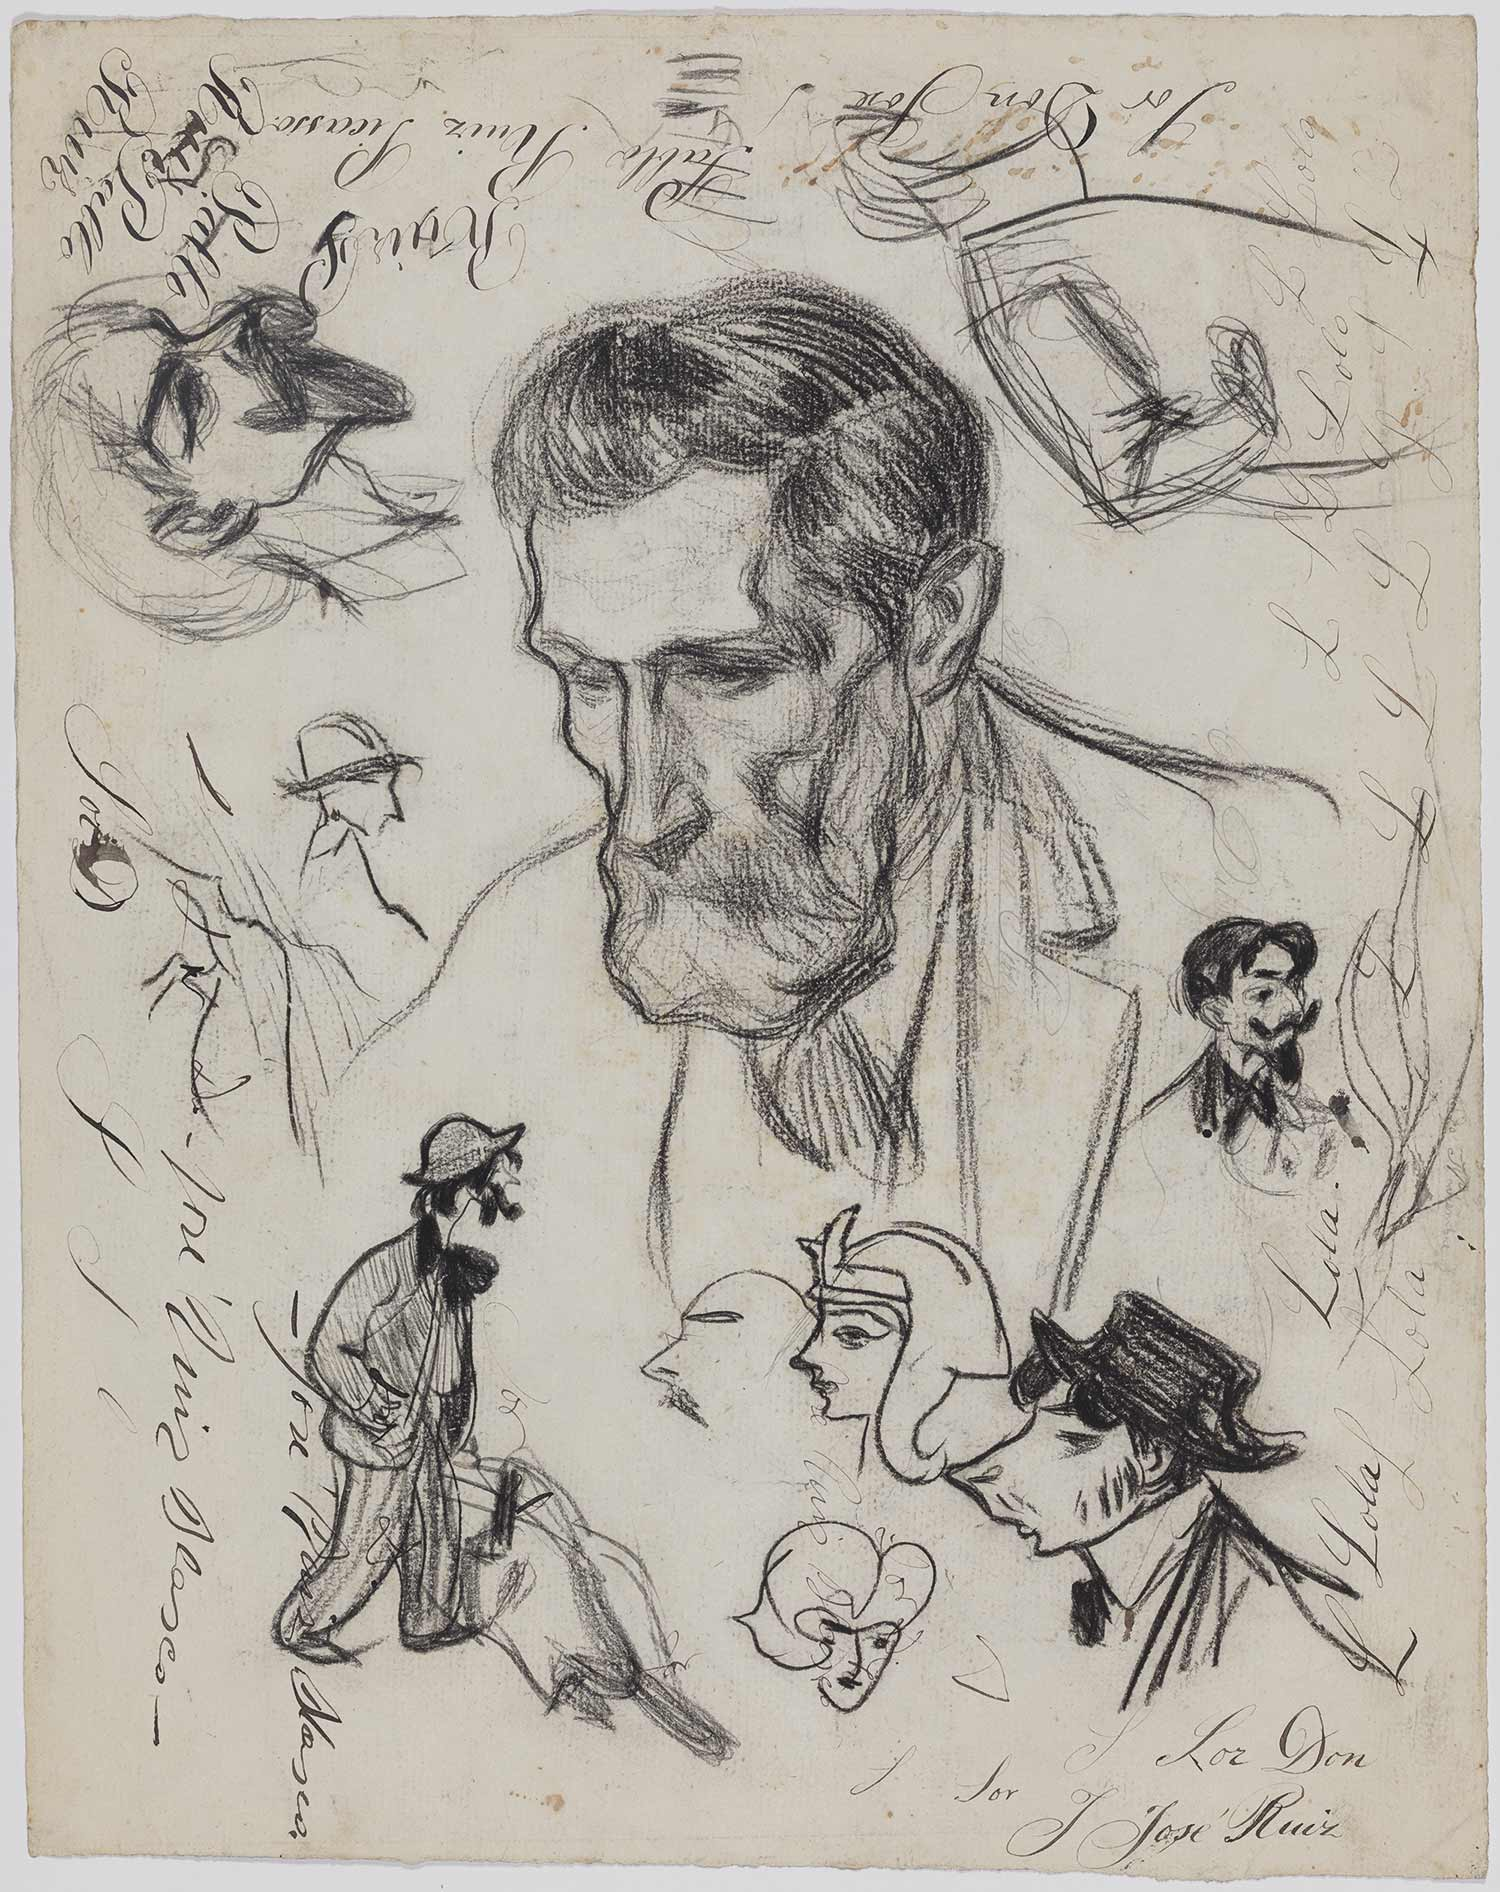 The artist's father, Carles Casagemas and various caricatures